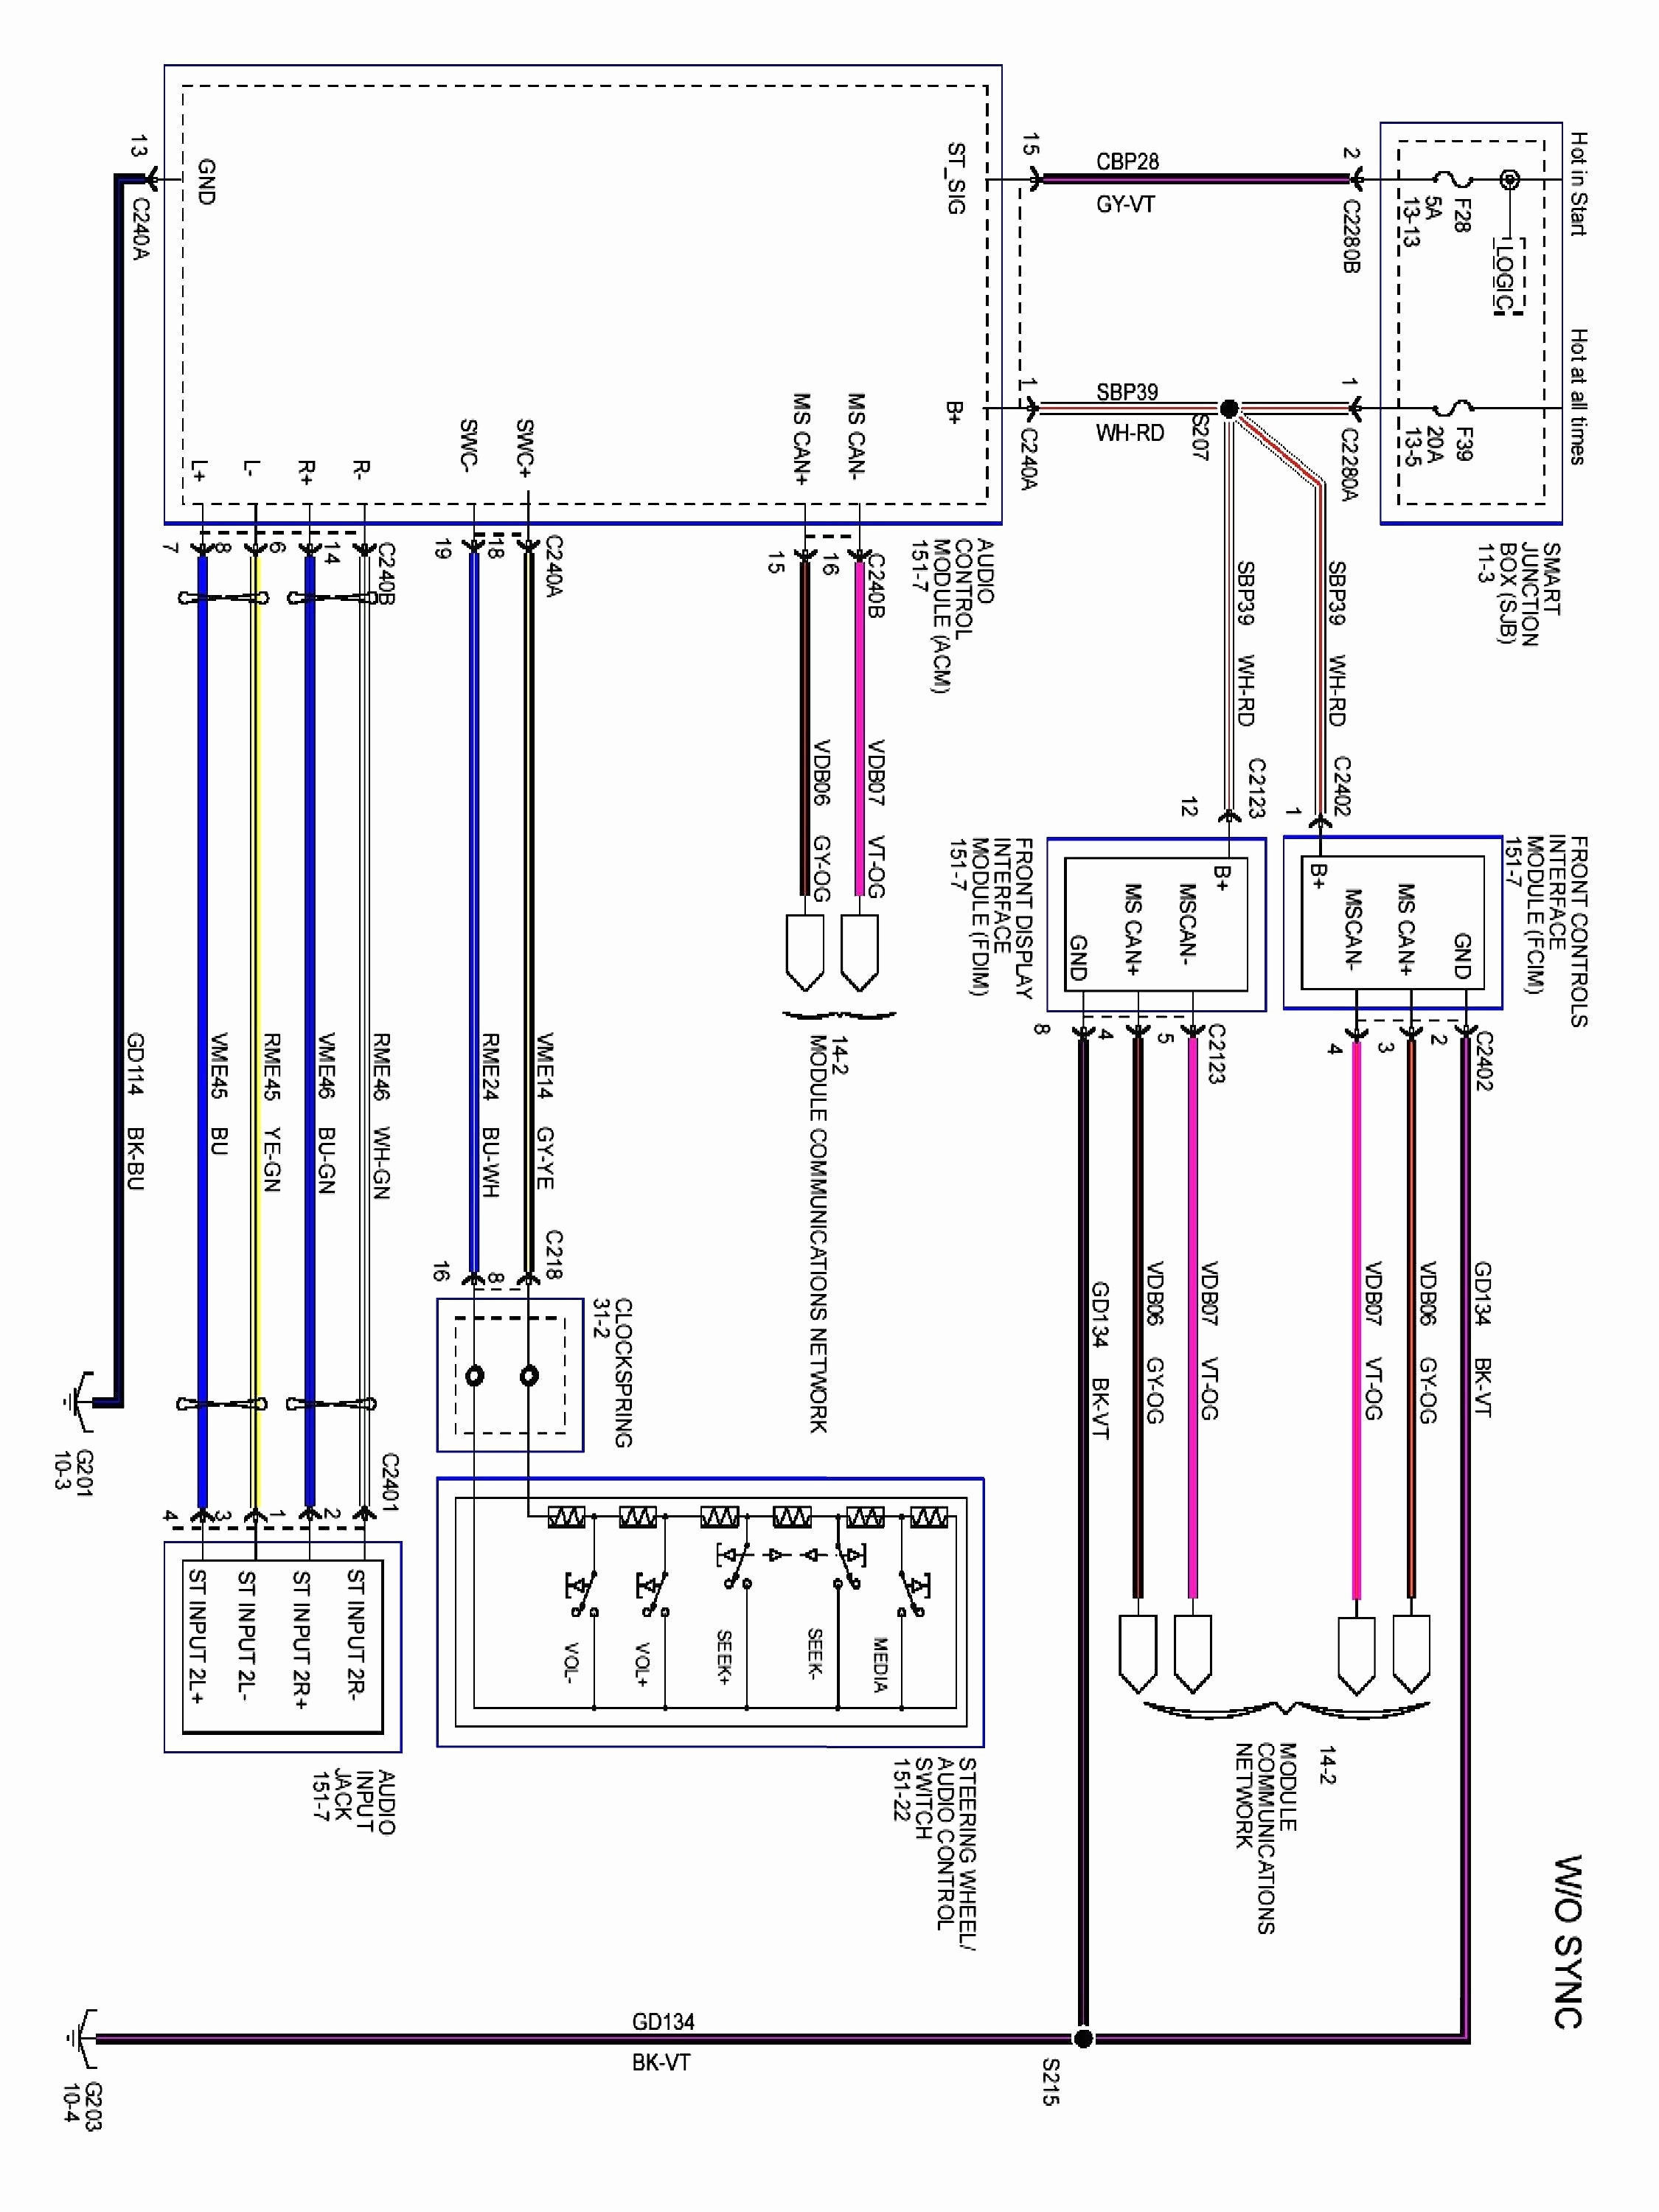 Ford Ranger Stereo Wiring Diagram on ford ranger ac wiring diagram, ford radio wiring diagram, ford ranger headlights diagram, 2003 ford ranger wiring diagram, 2007 ford ranger wiring diagram, 1995 ford ranger wiring diagram, 2004 ford wiring diagram, ford ranger wire diagram, 2000 ford ranger frame diagram, ford ranger 2.9 wiring-diagram, 1999 ford ranger wiring diagram, 03 ford ranger wiring diagram, ford ranger stereo wiring colors, ford ranger trailer wiring diagram, ford ranger radio diagram, ford ranger 4 0 engine diagram, ford ranger stereo installation, 2002 ford ranger wiring diagram, 88 ford ranger wiring diagram, 1997 ford ranger wiring diagram,